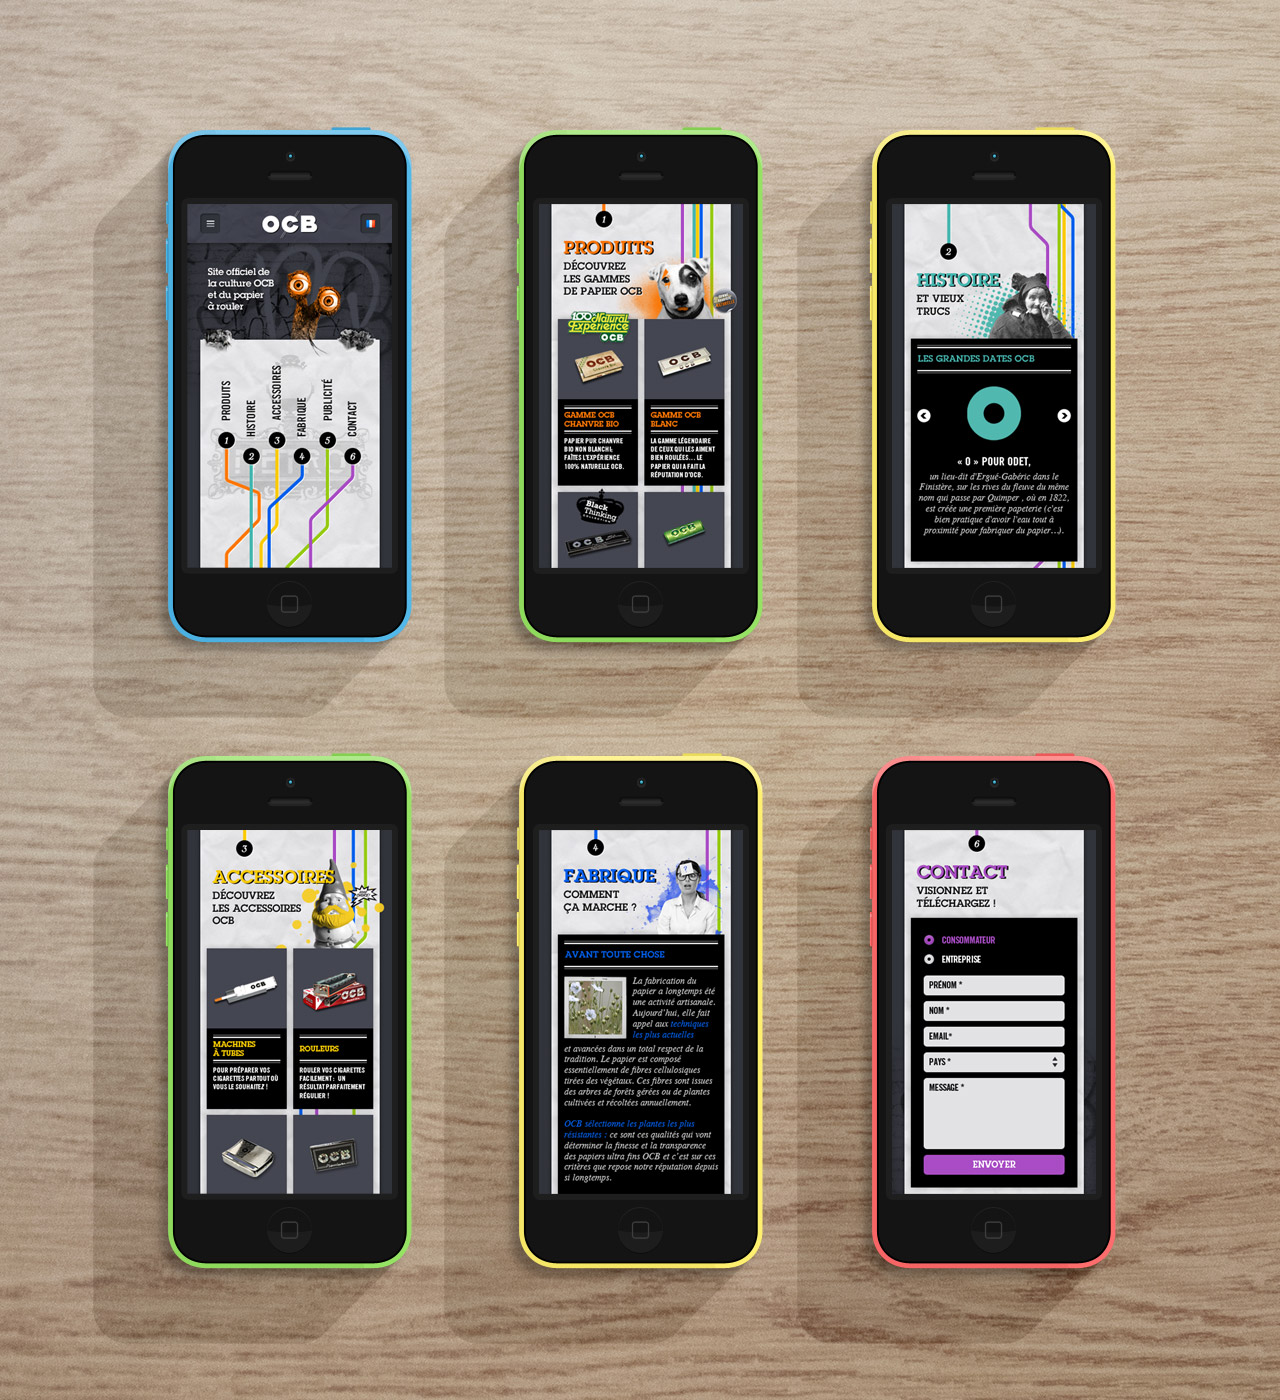 ocb-site-mobile-global-creation-communication-caconcept-alexis-cretin-graphiste